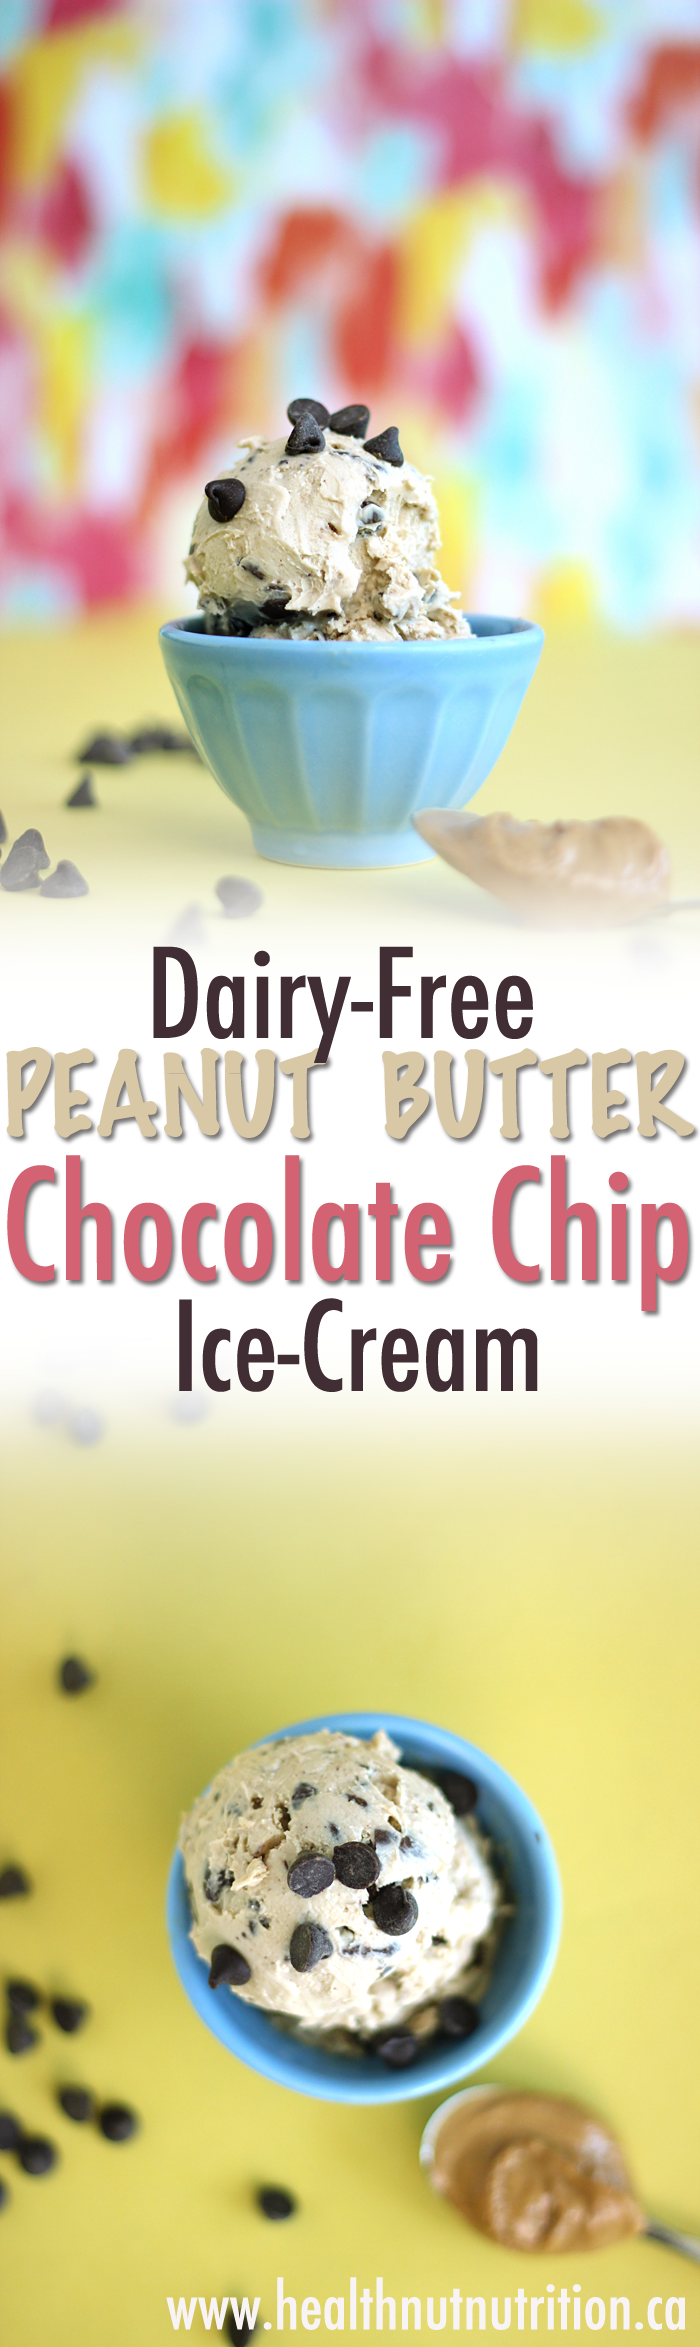 A sweet and salty ice cream with whipped peanut butter and crunchy chocolate chips scattered throughout. This Peanut Butter Chocolate Chip Ice-Cream is dairy-free and sure to please.